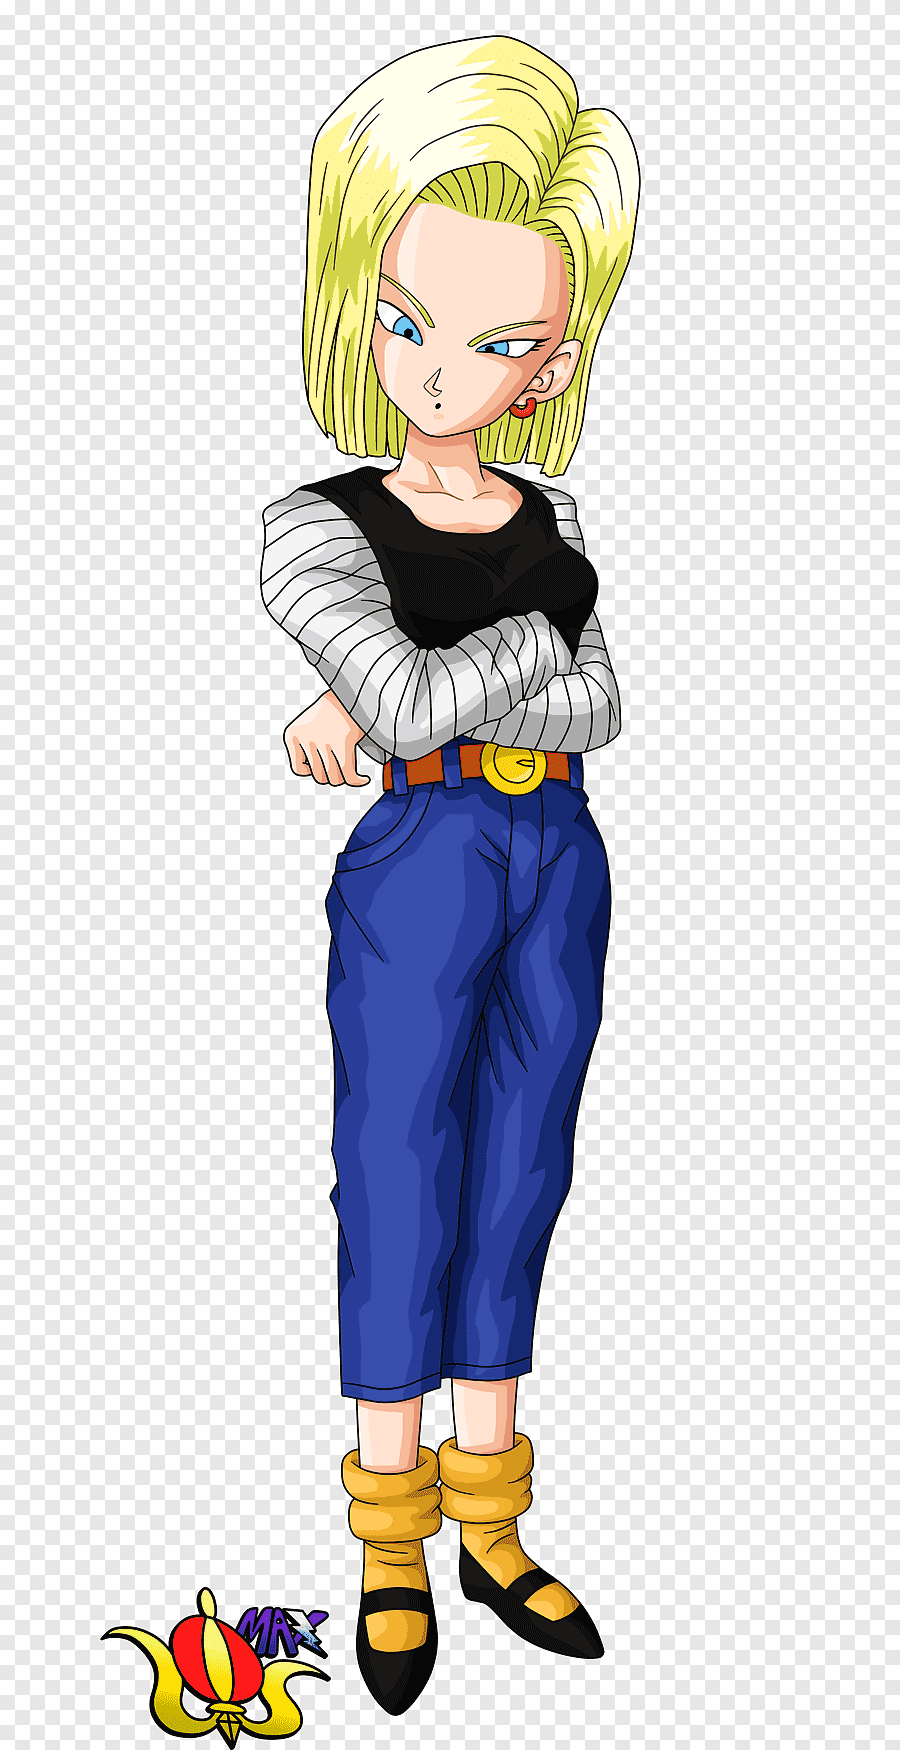 How Can Android 18 Have A Baby : android, Android, Majin, Krillin, Dragon, Dokkan, Battle, Bulma,, Goku,, Child,, Human, PNGEgg